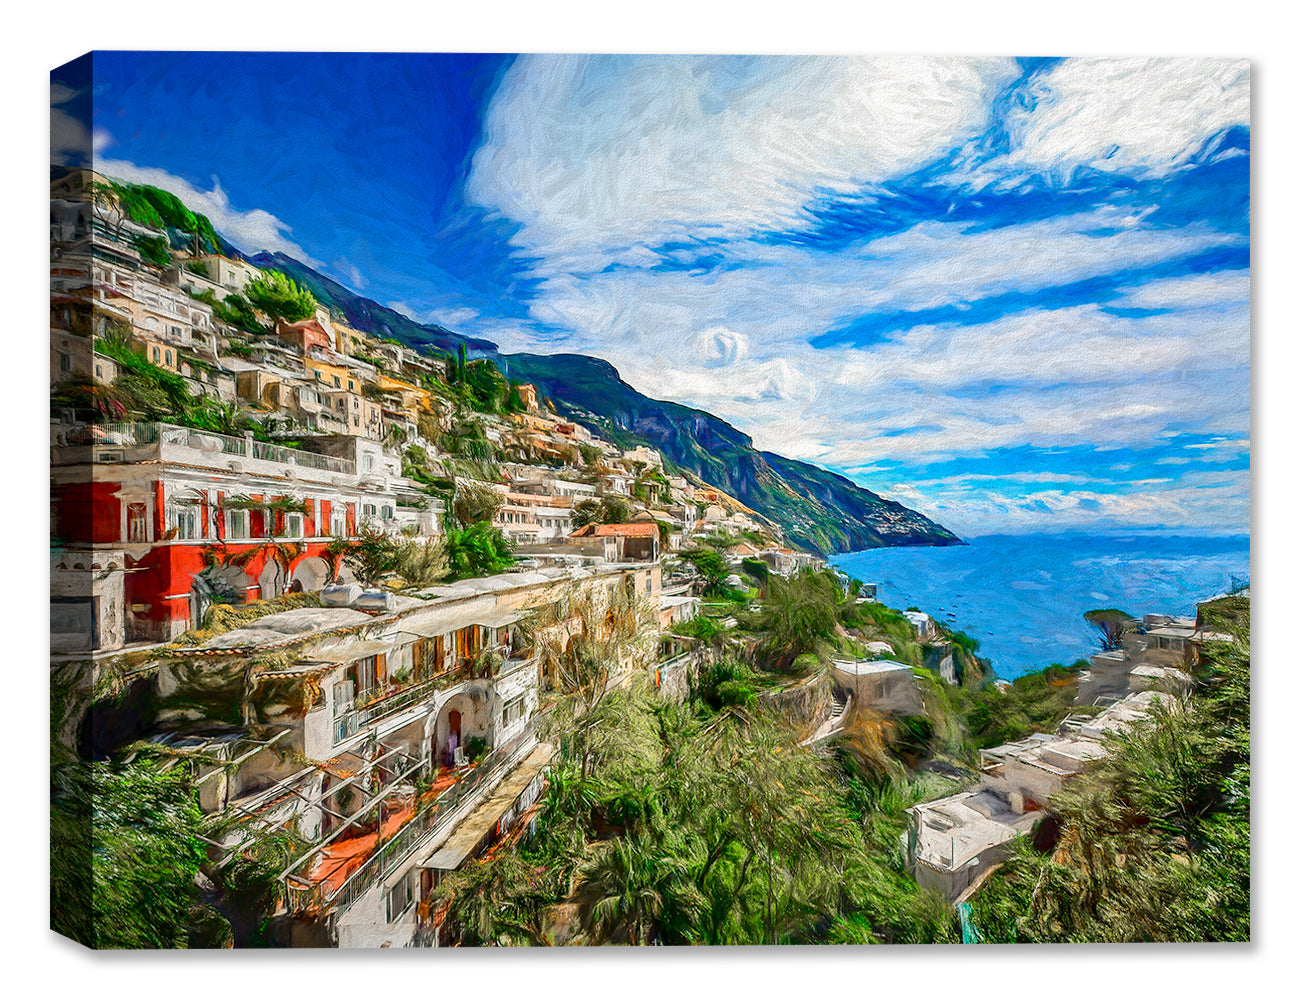 Amalfi Coast in Italy - Canvas Art Painting